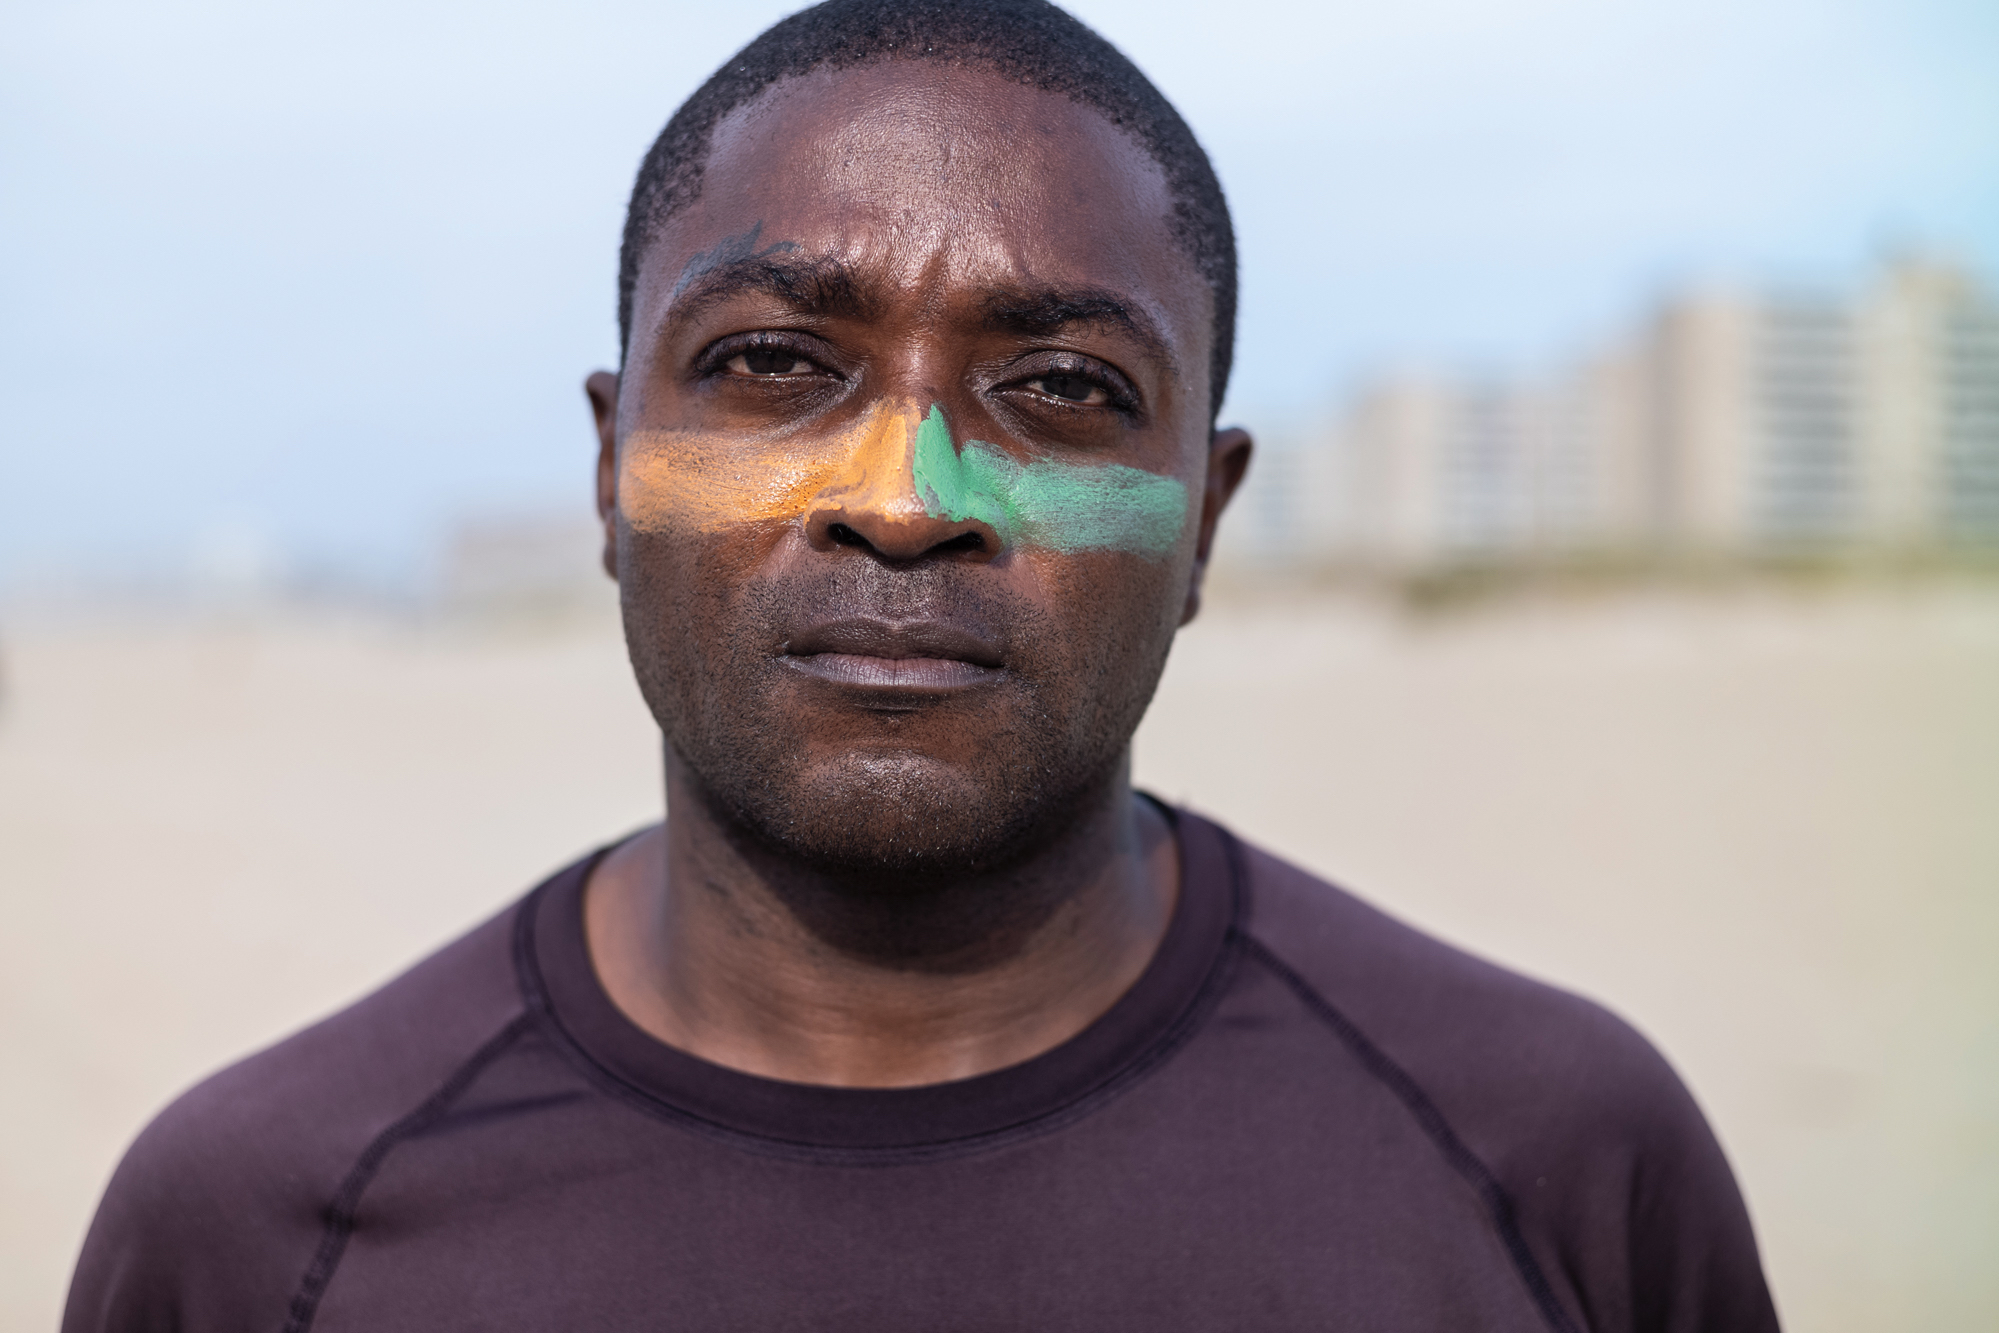 Led by Harris, the New York surf community has made a massive statement these past few months, organizing hundreds of surfers for multiple paddle outs for racial justice.